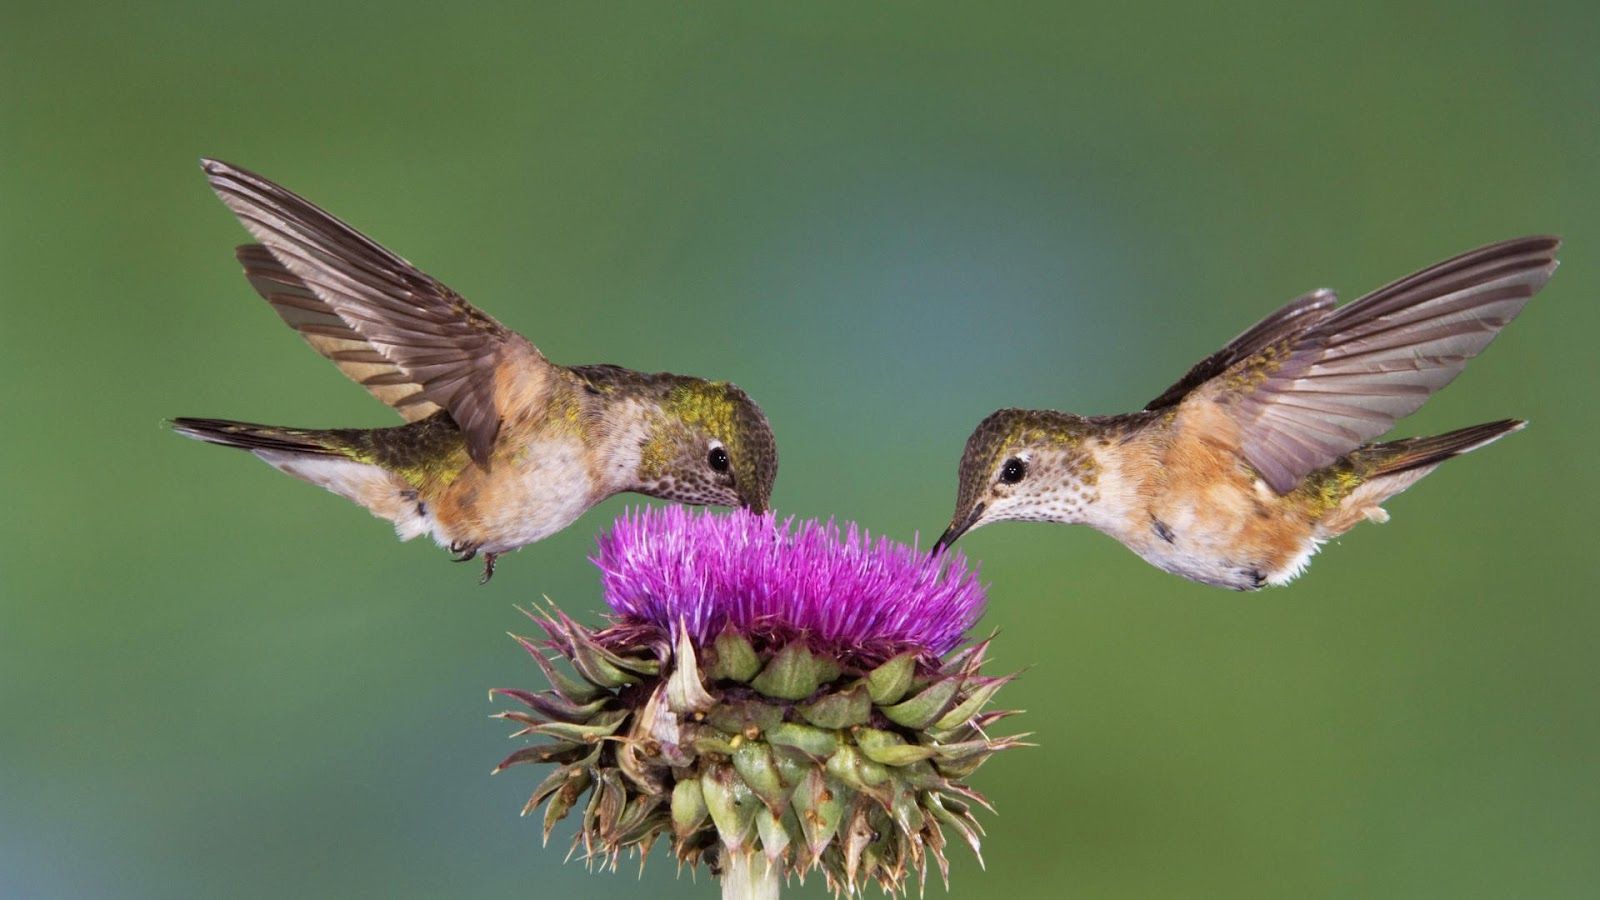 two bird eating from a flower flying HD birds wallpapers backgrounds 1600x900